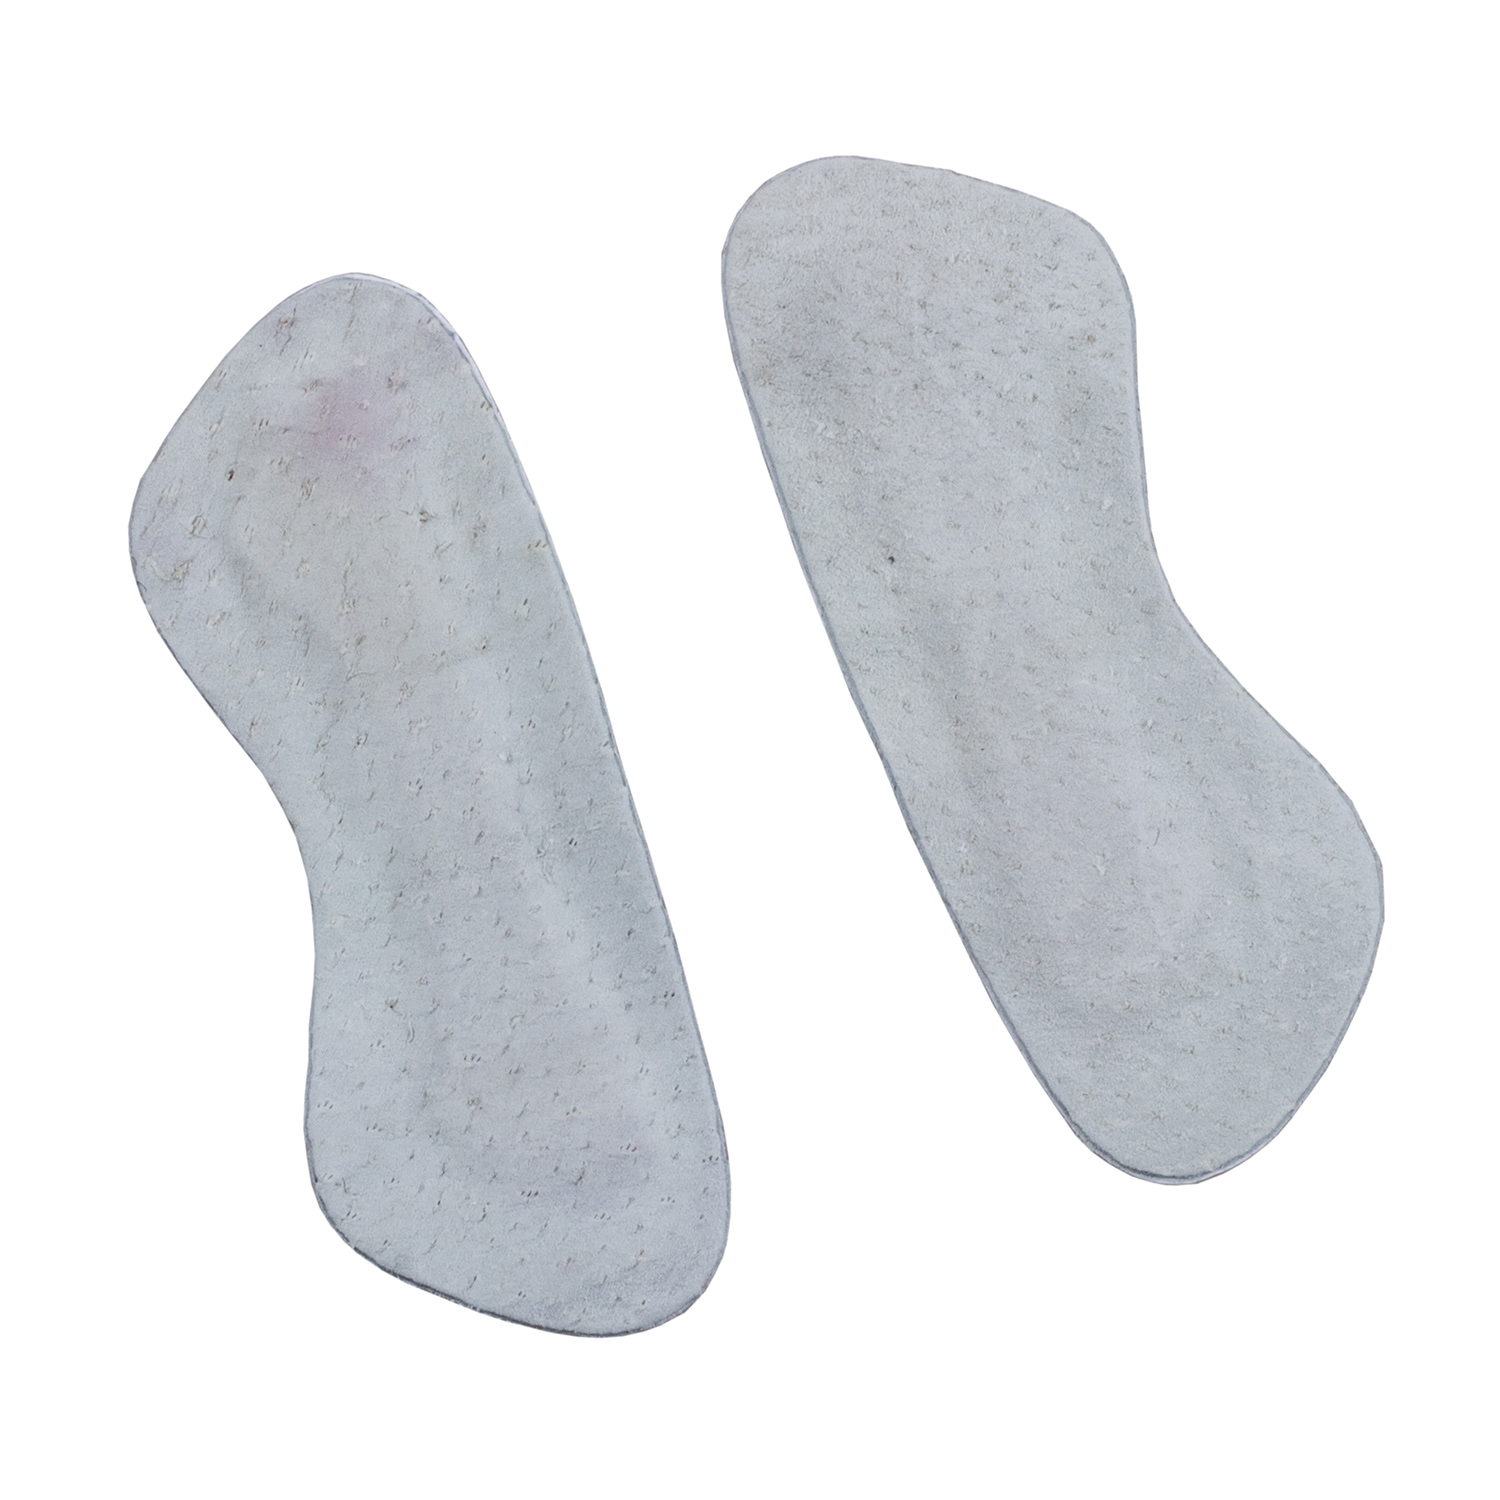 Heels Grips gel inserts Pills- One Size Fits All shoe - Helps prevent blisters heels padded wrist guard one size fits most